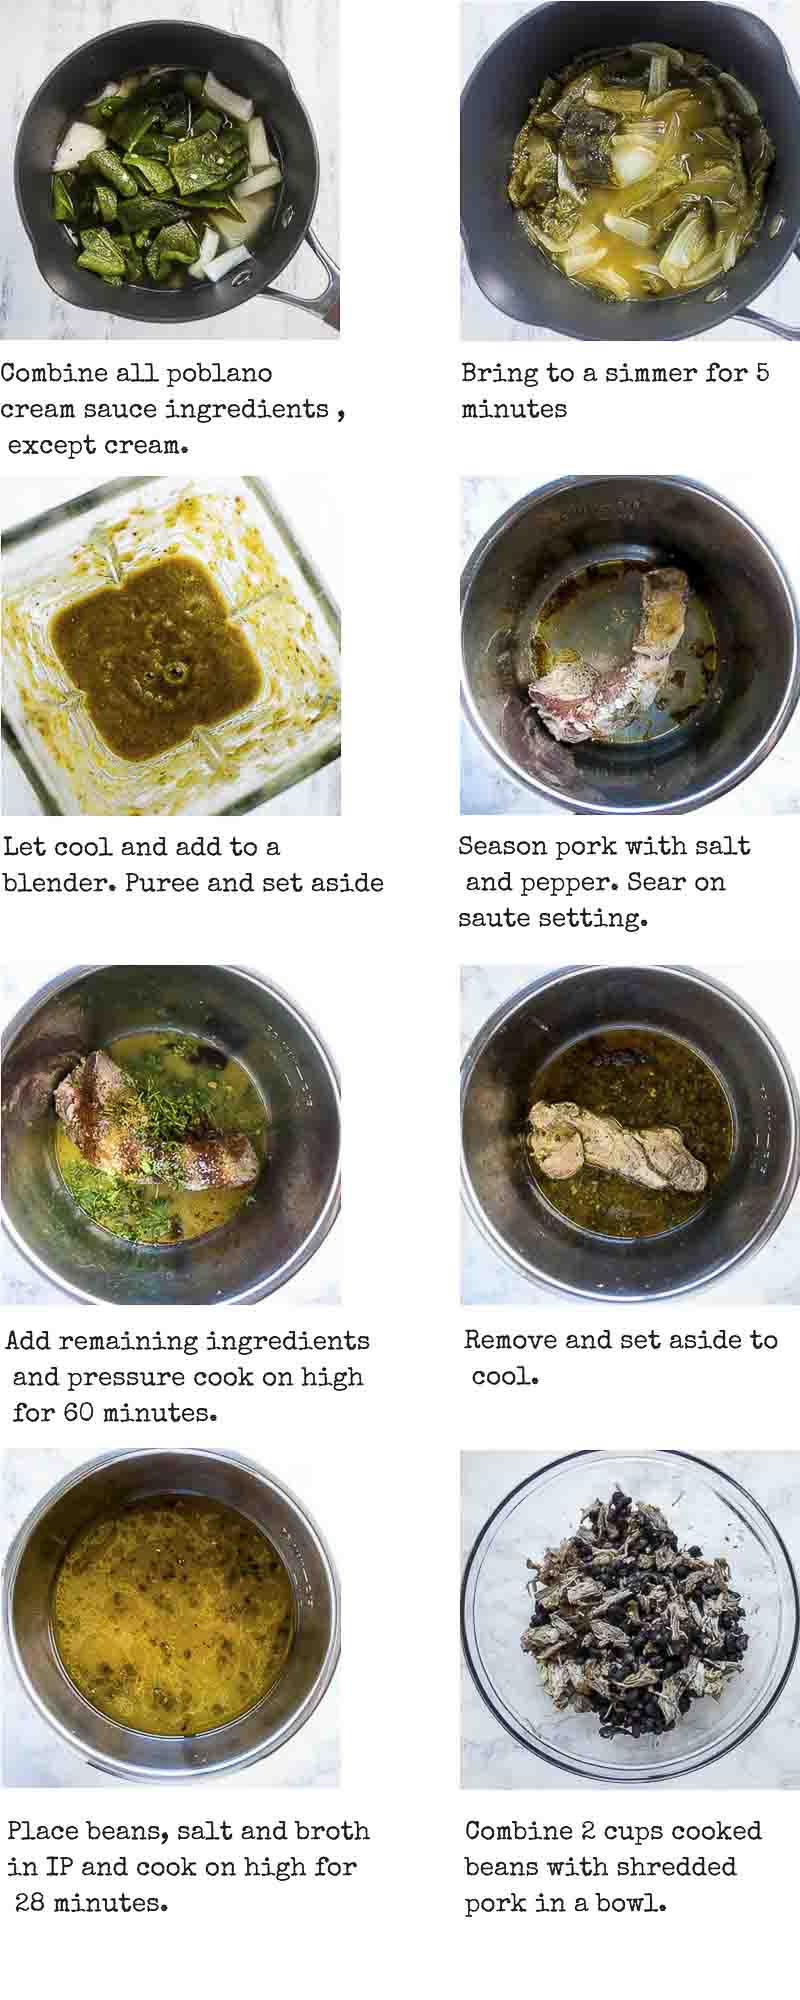 Step by step instructions for poblano cream sauce and pulled pork